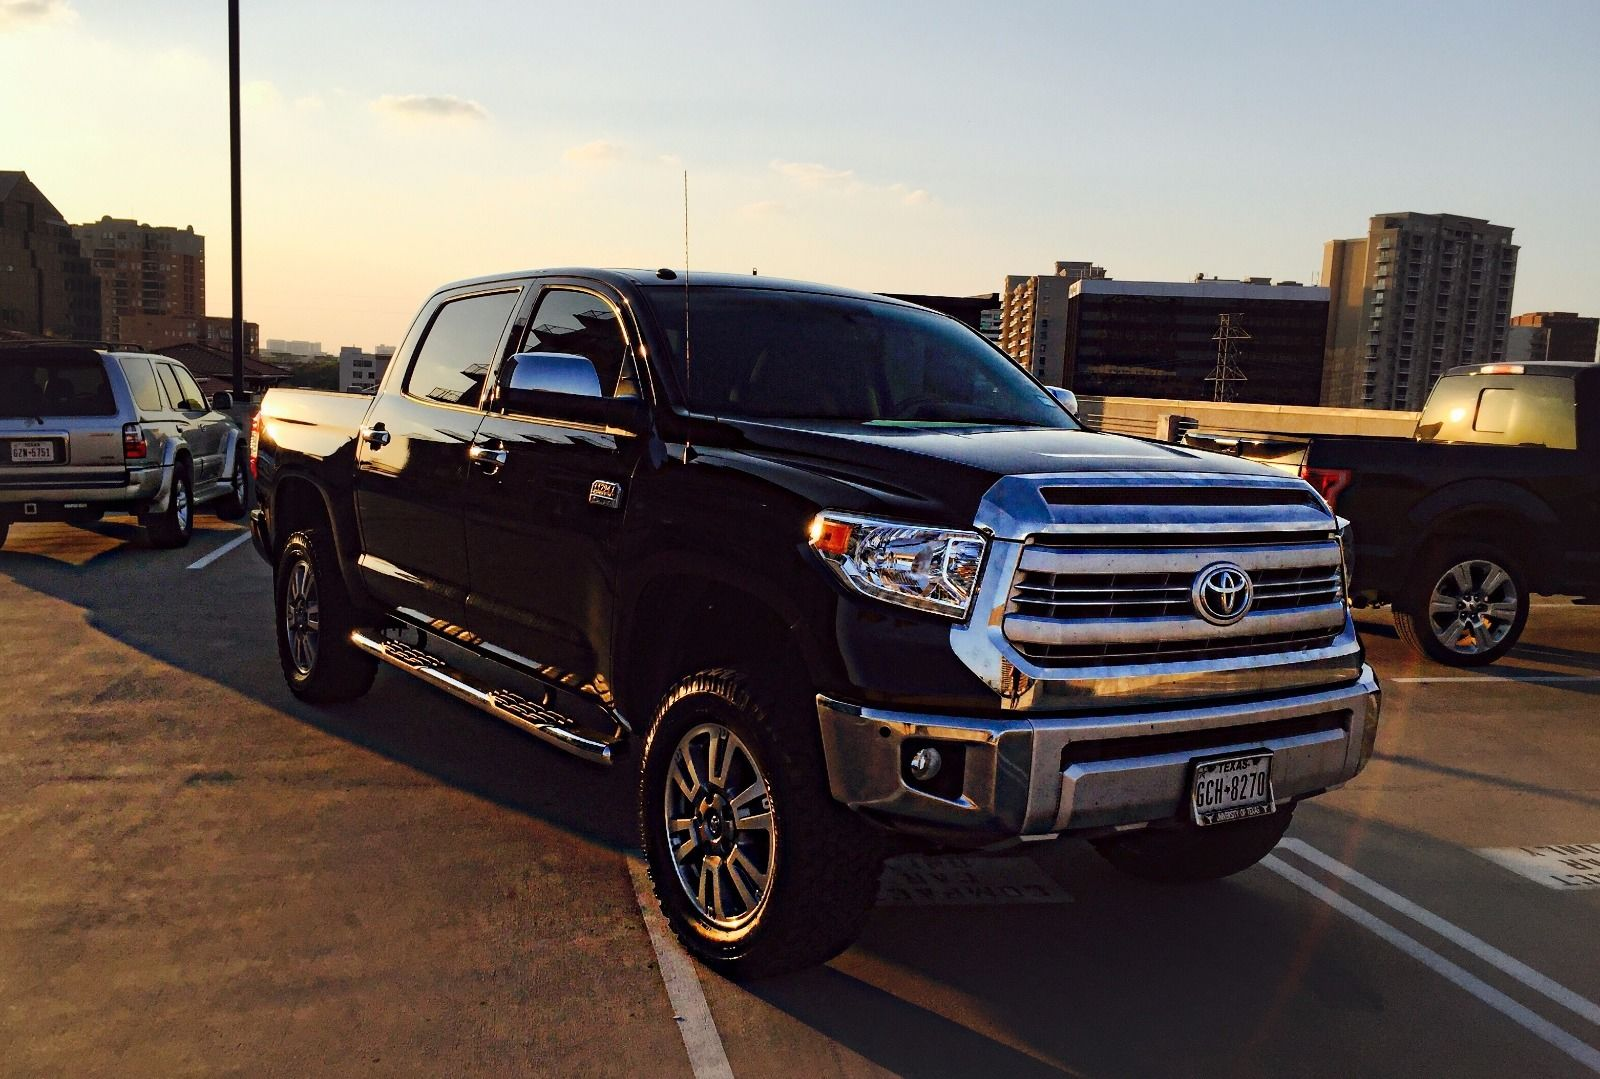 Toyota Dealership Dallas >> Loaded 2015 Toyota Tundra 1794 Edition lifted truck for sale